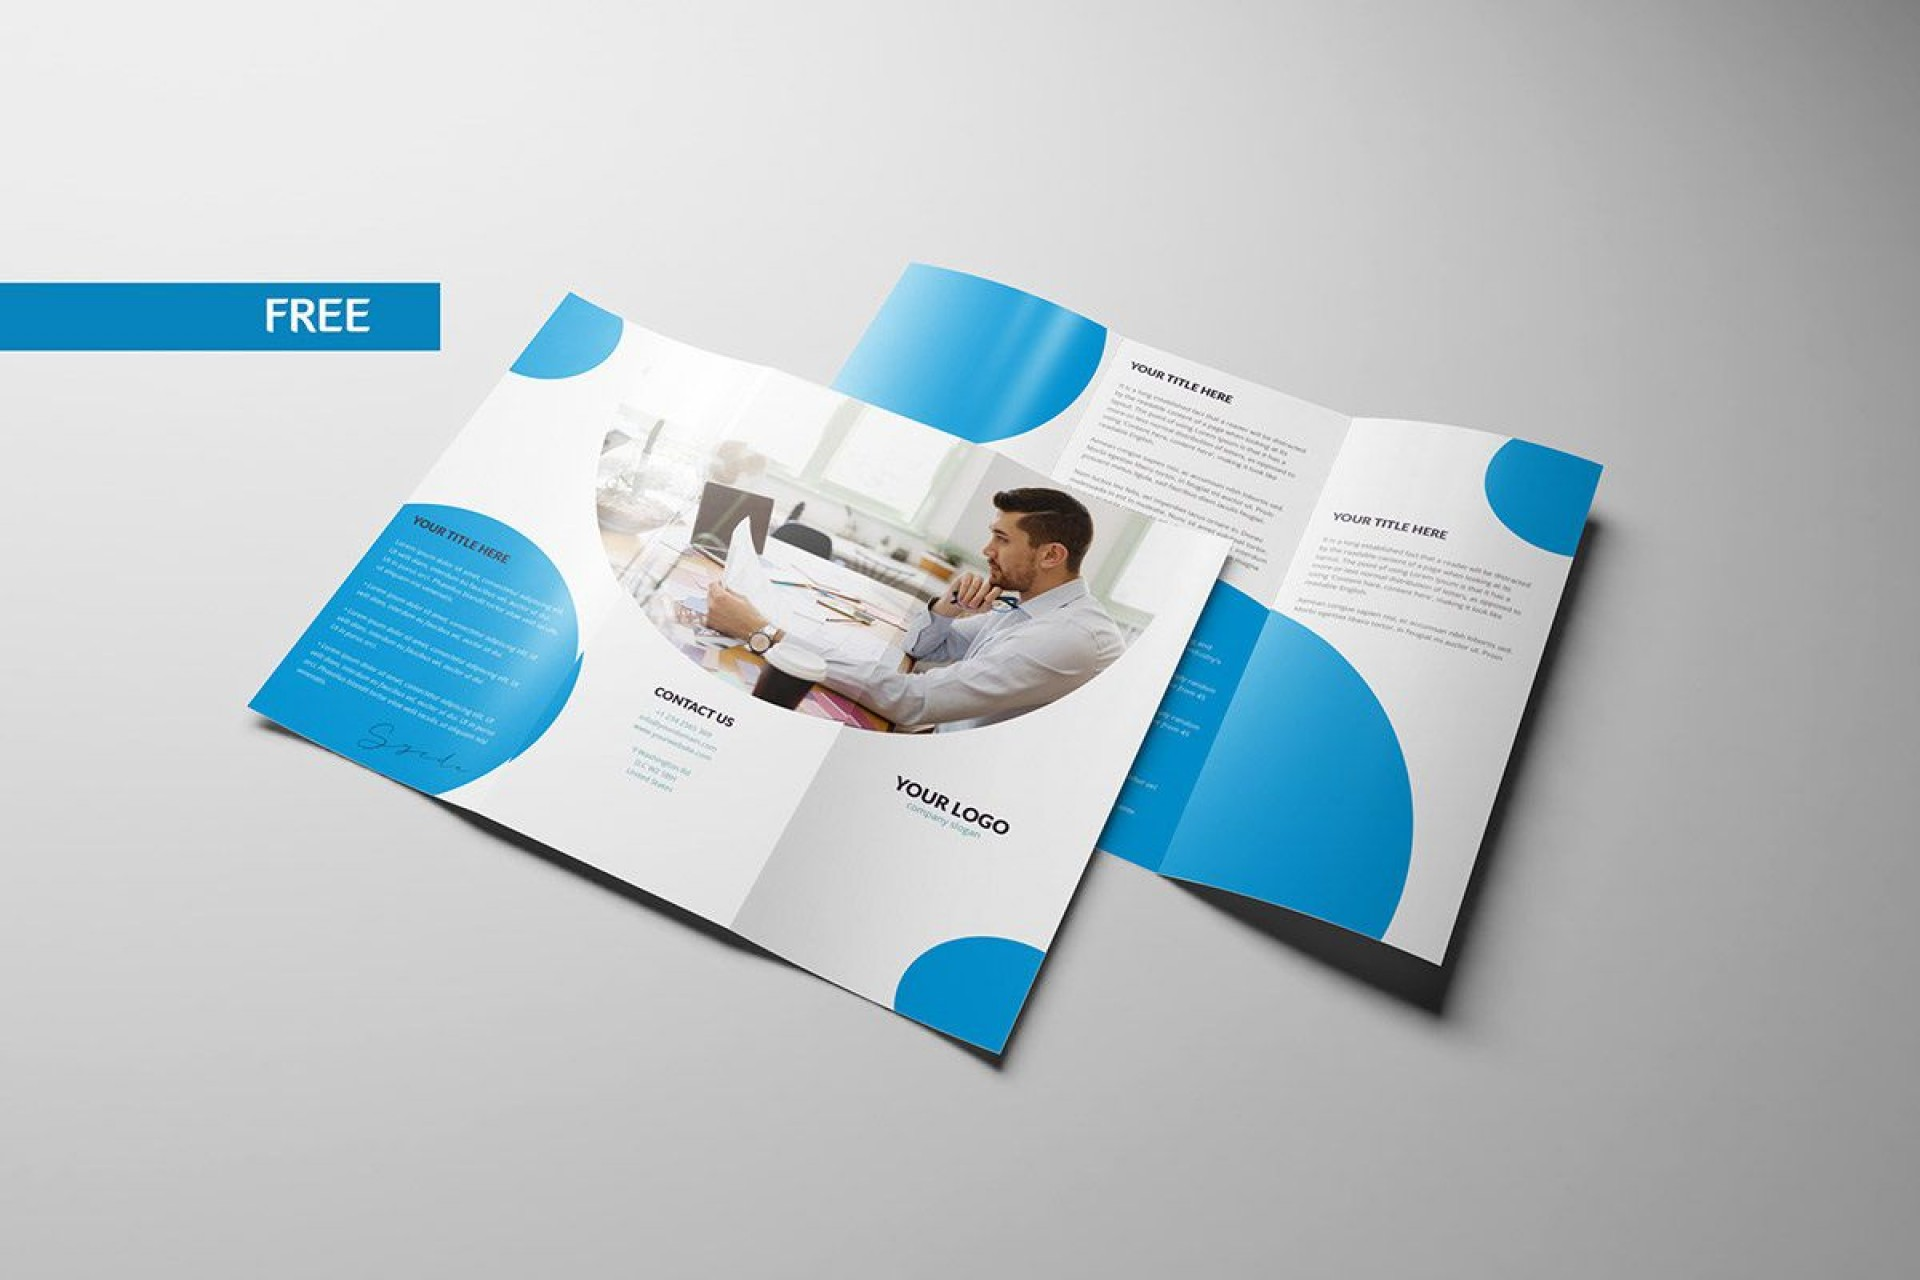 006 Unbelievable Brochure Template Photoshop Cs6 Free Download Example 1920